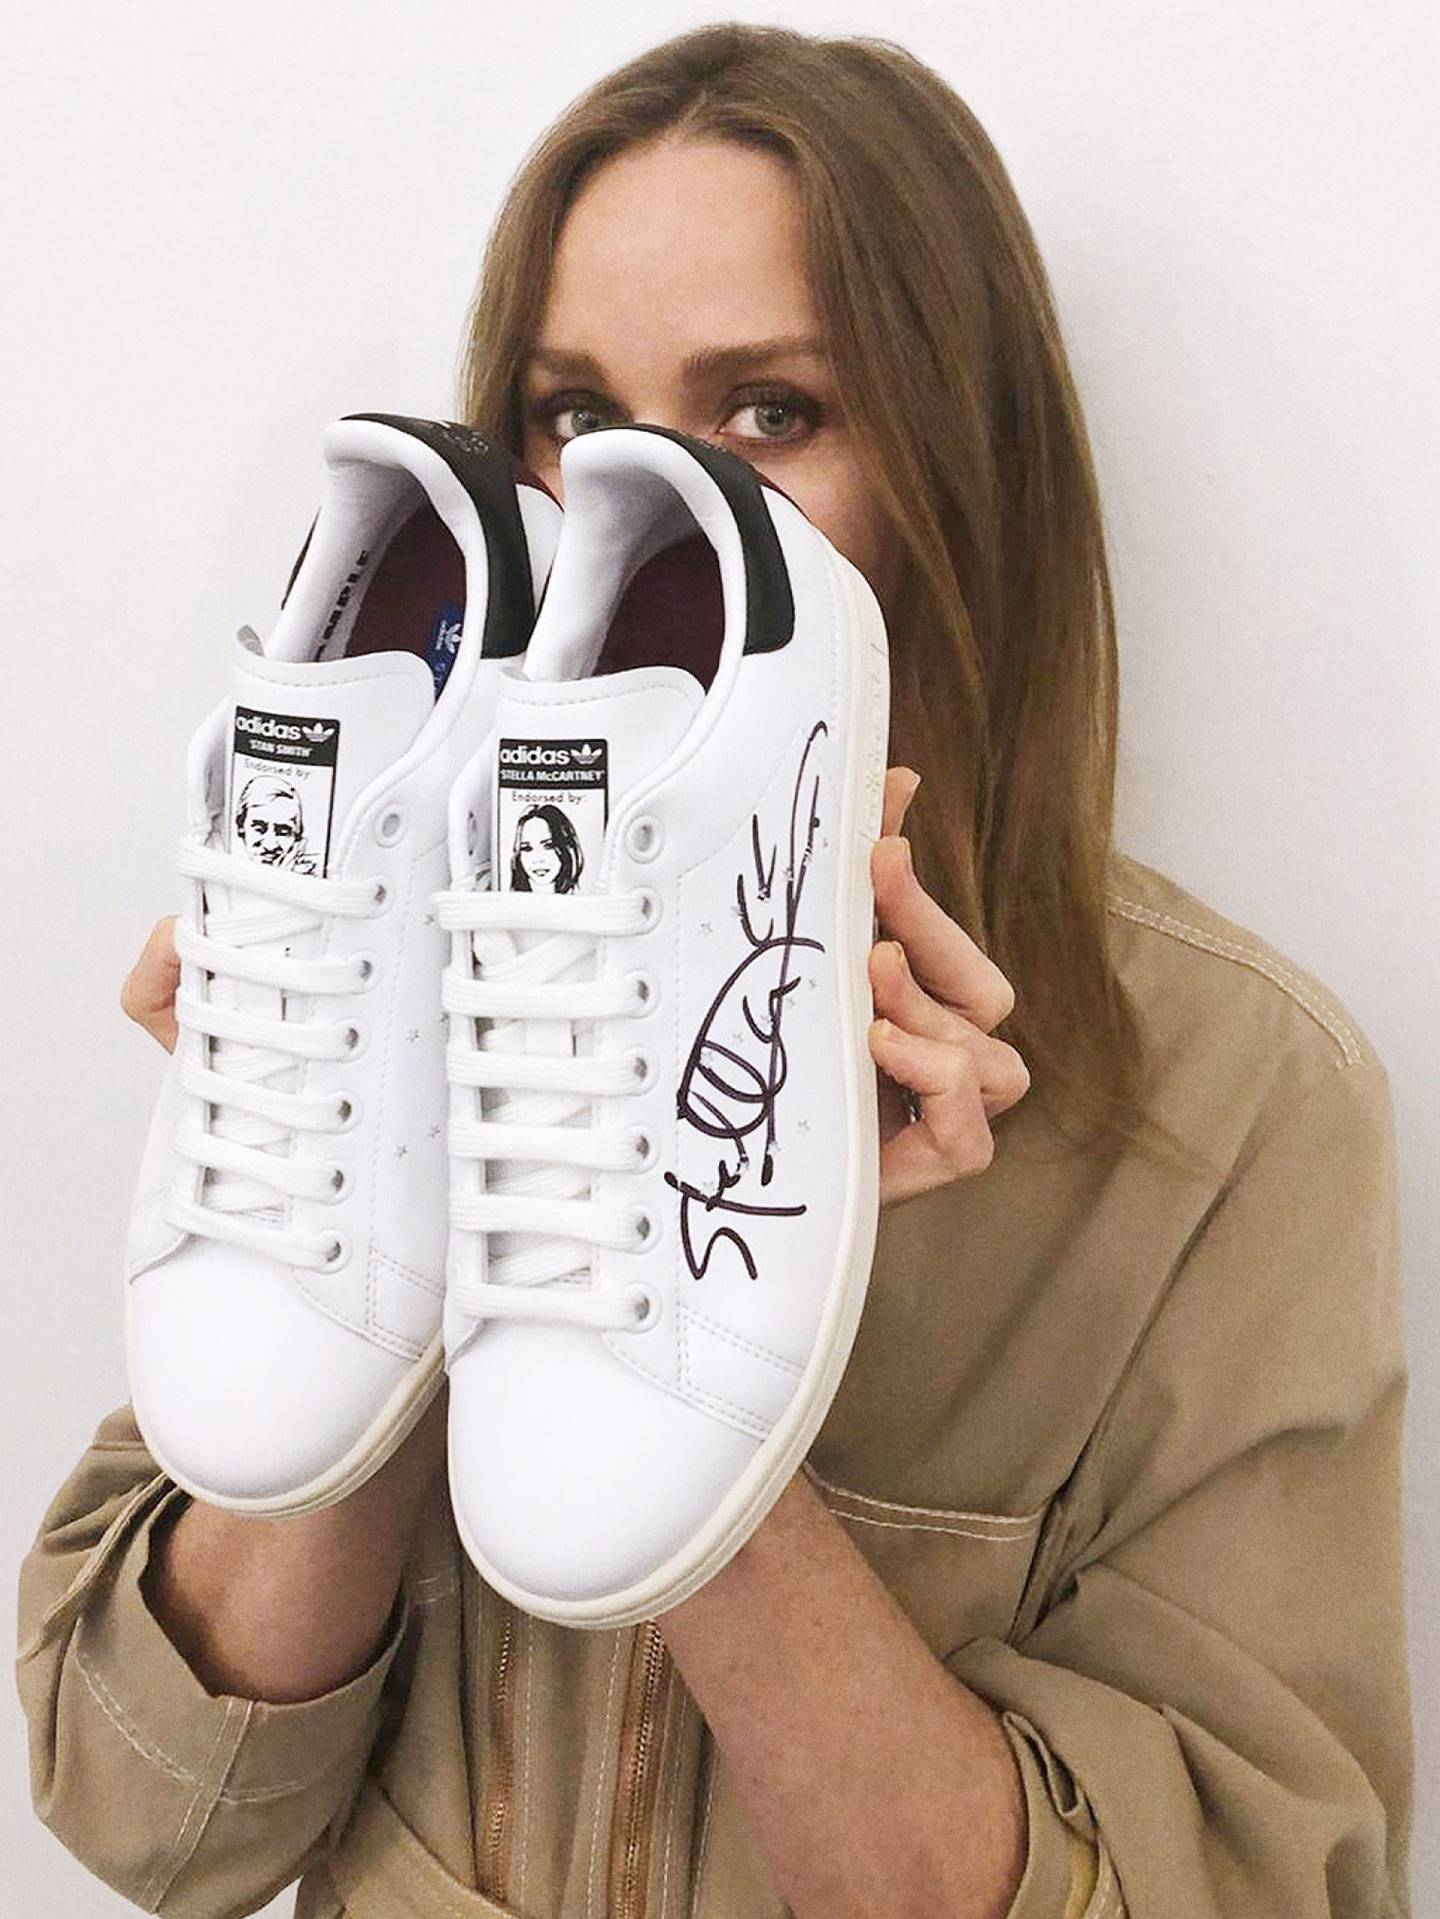 info for fd911 cdff1 Stella McCartney Just Designed Her Own Stan Smiths   British Vogue